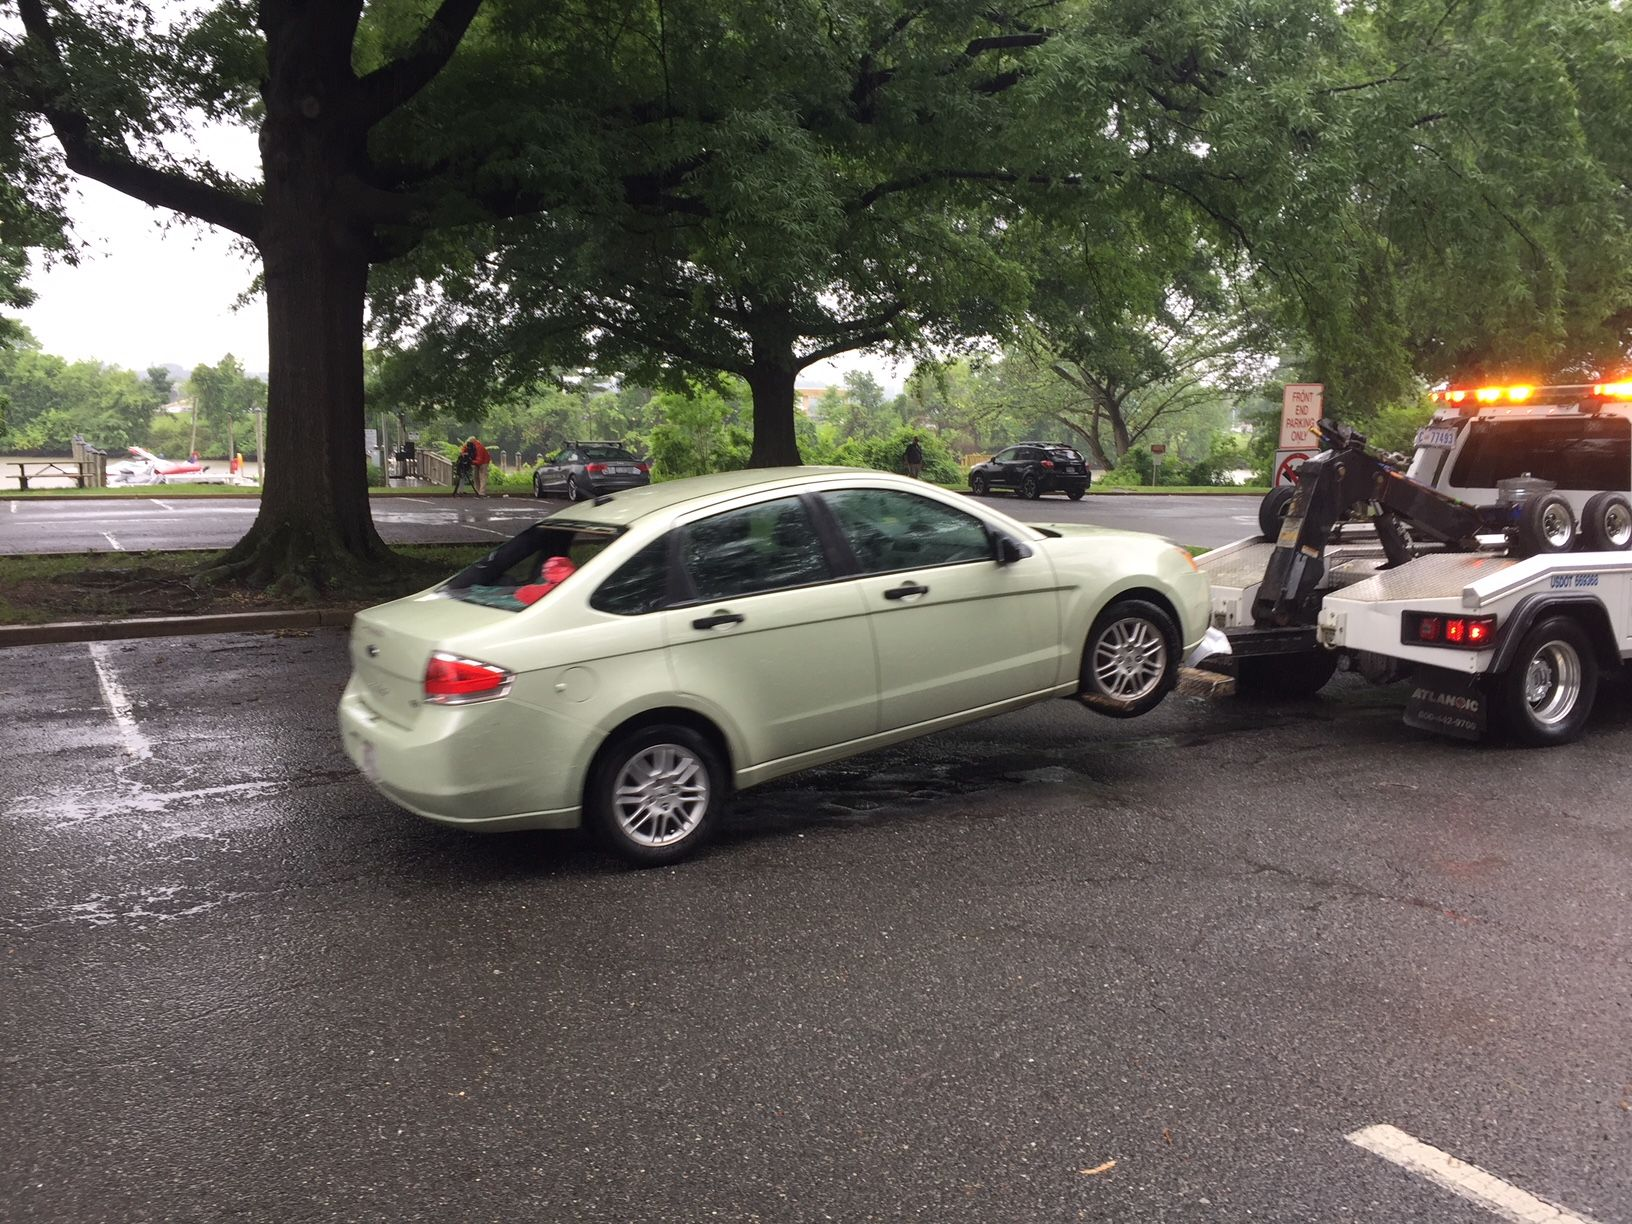 The car was completely submerged and the man was pulled through the car window, according to the Arlington County Fire Department. (WTOP/John Domen)